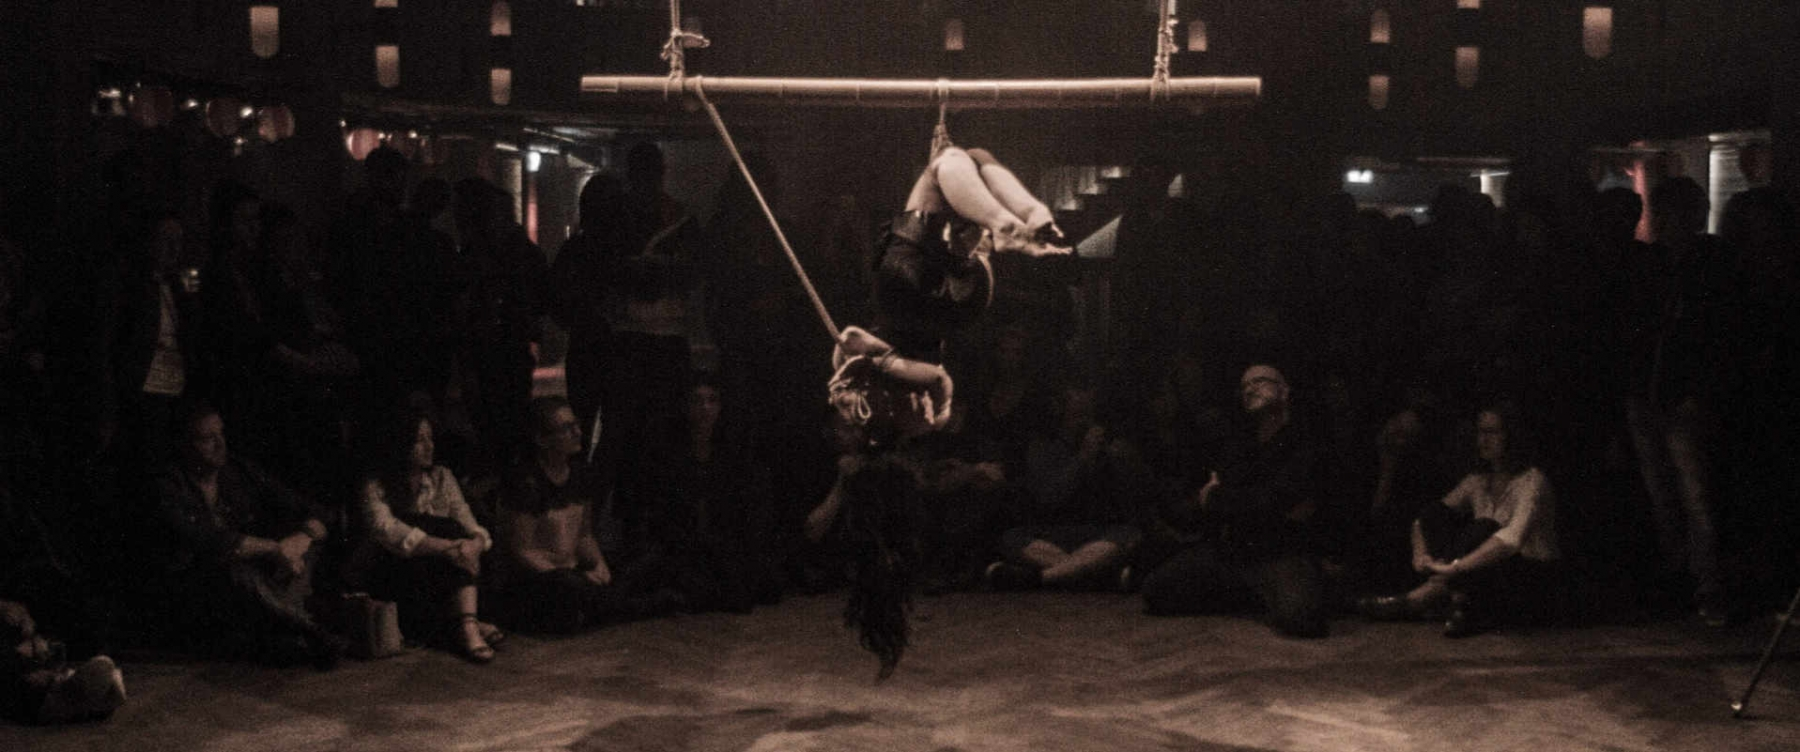 Discover Kinbaku in Berlin